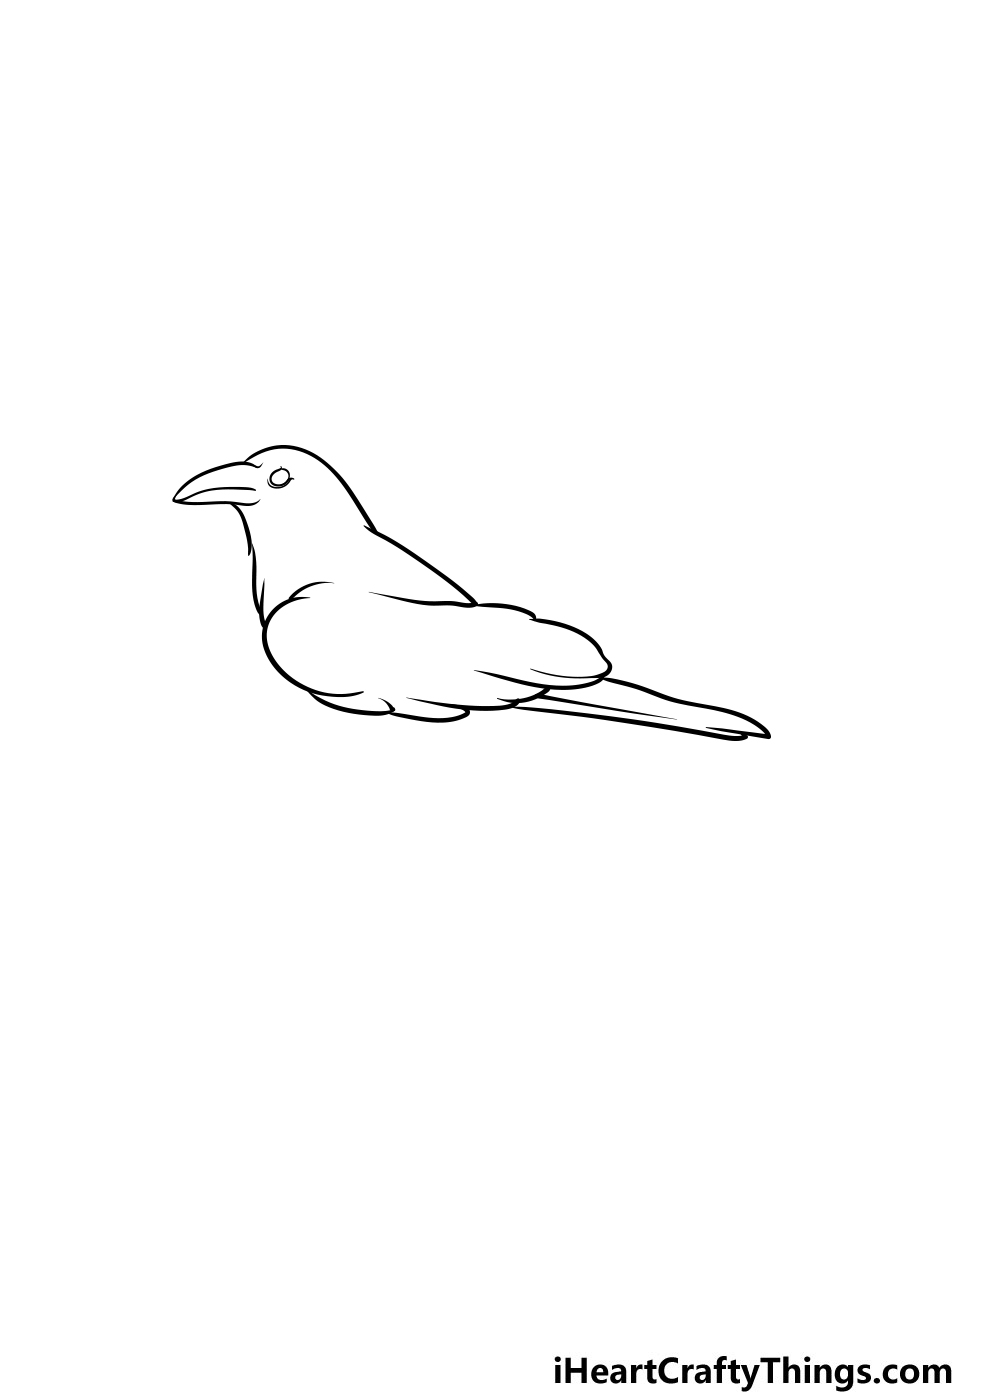 drawing a crow step 2